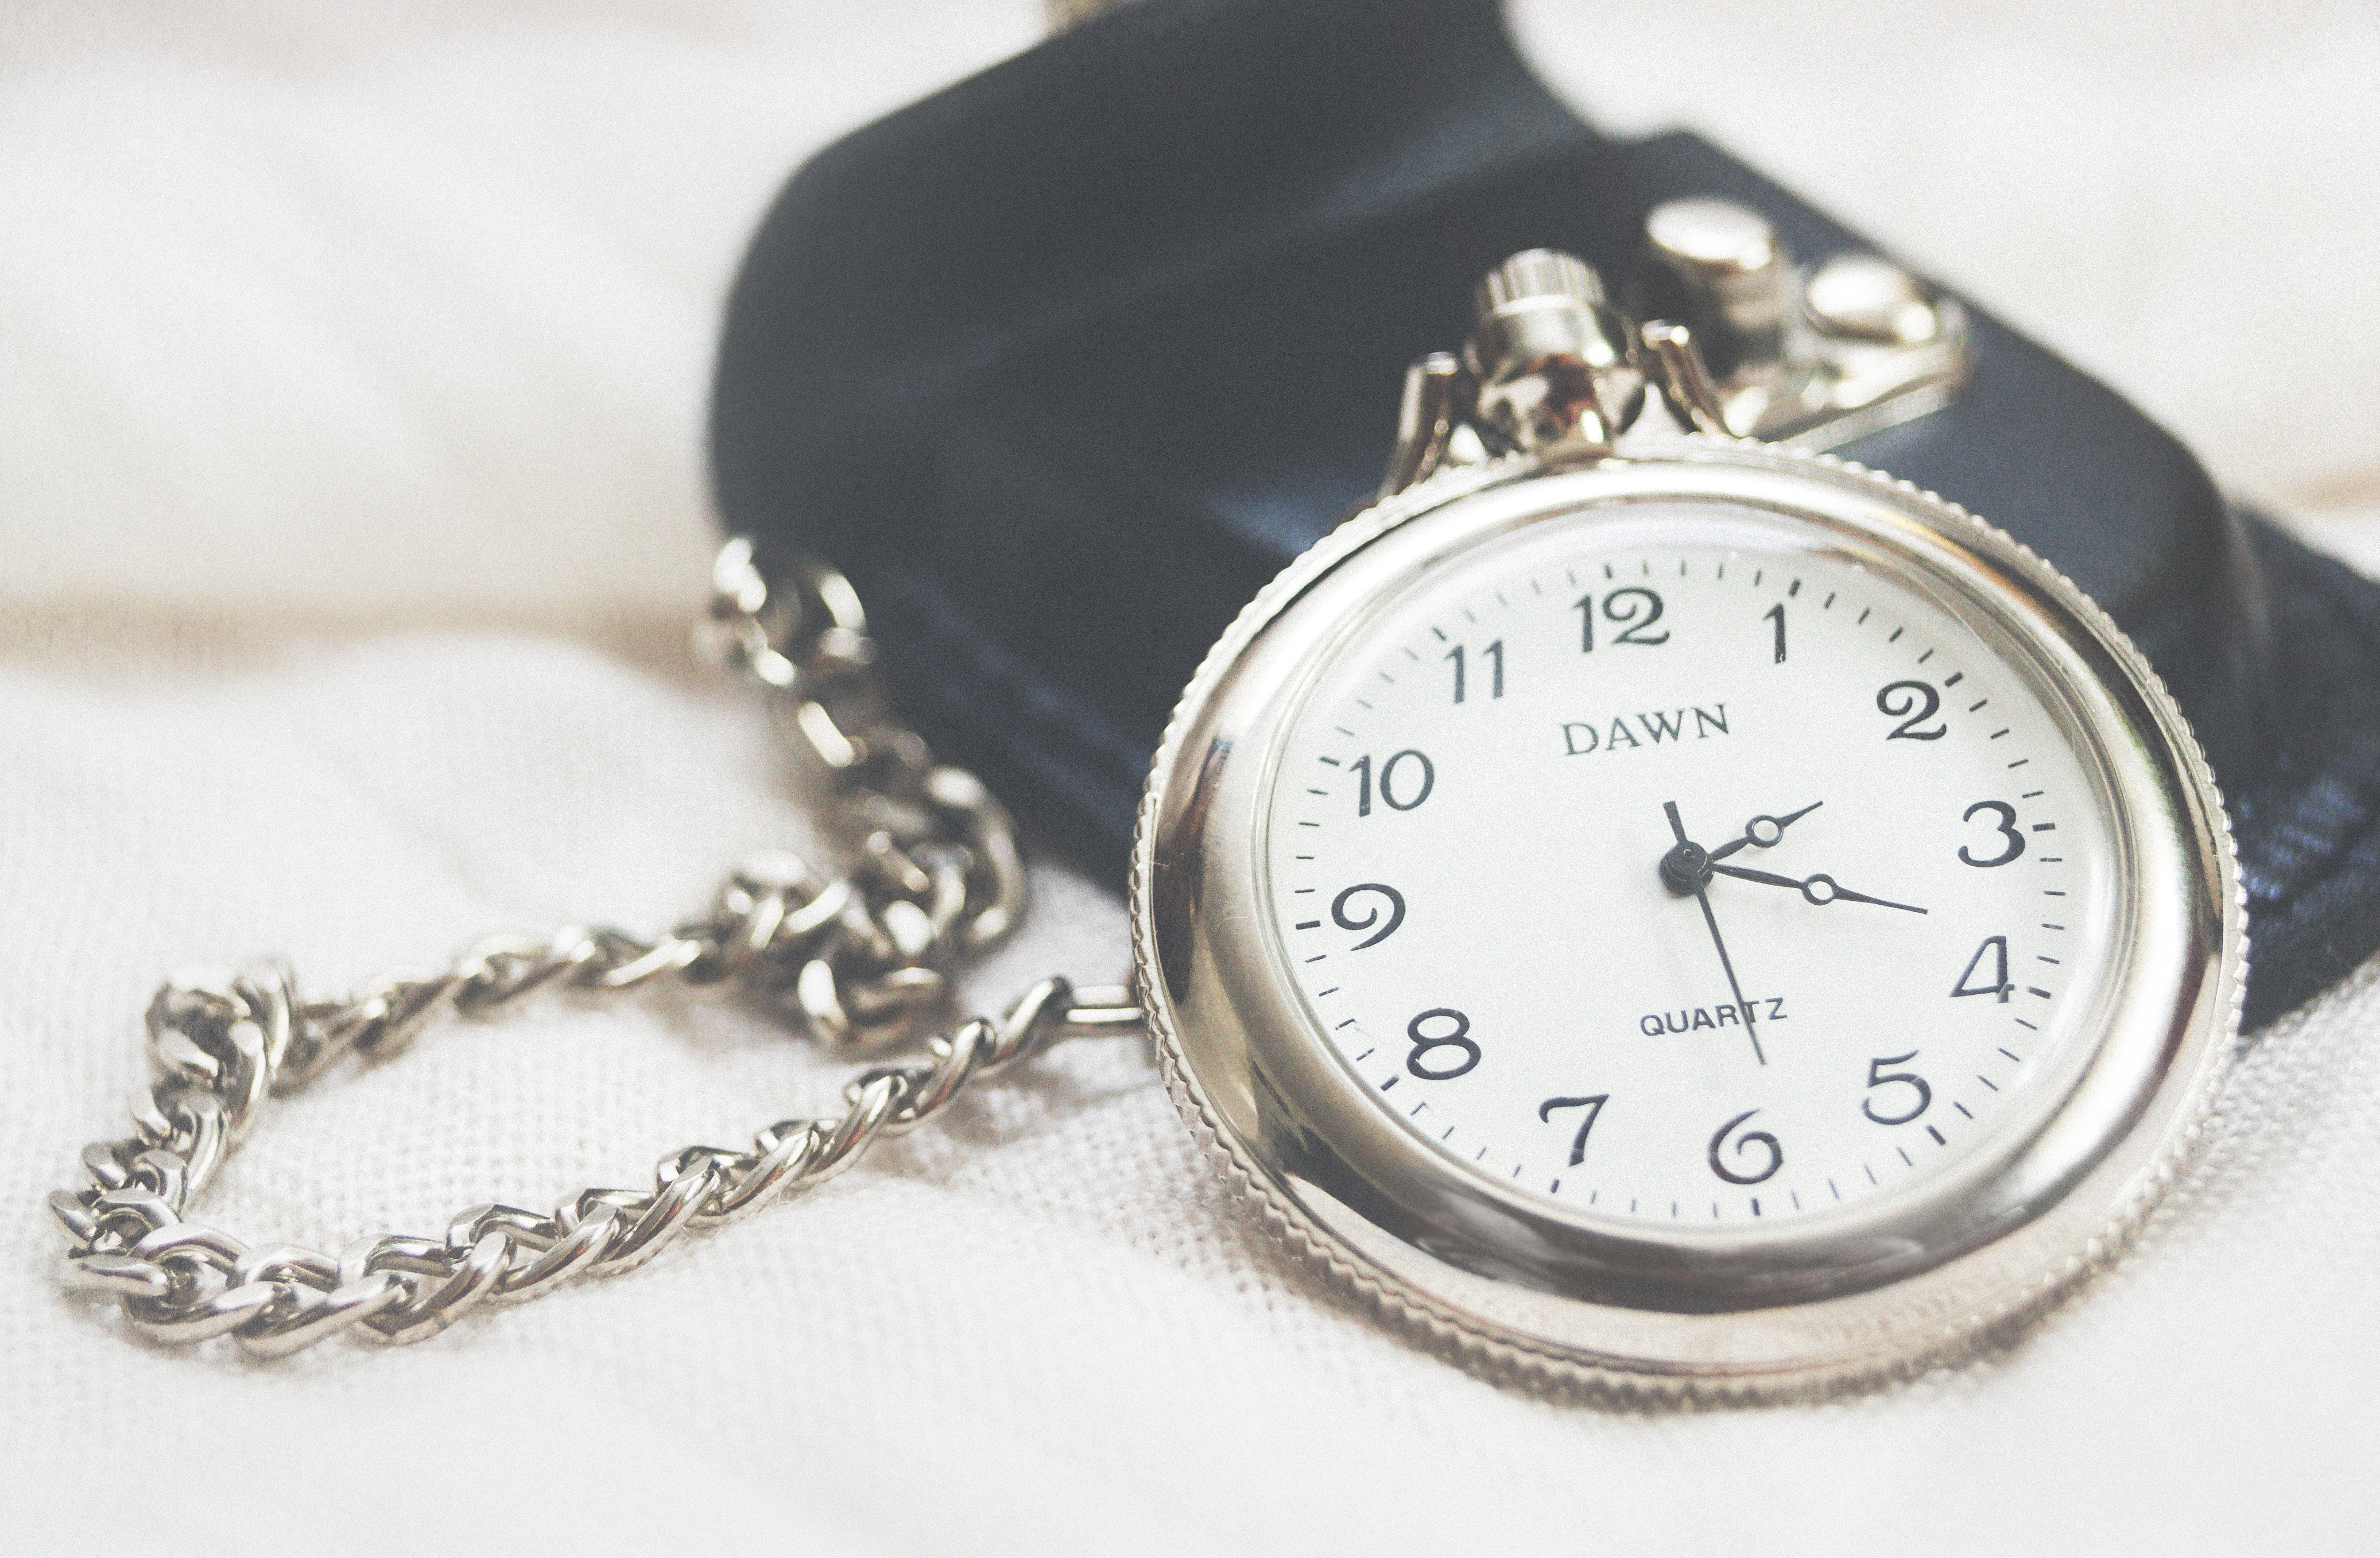 100908 download wallpaper Miscellanea, Miscellaneous, Pocket Watch, Clock Face, Dial, Chain screensavers and pictures for free